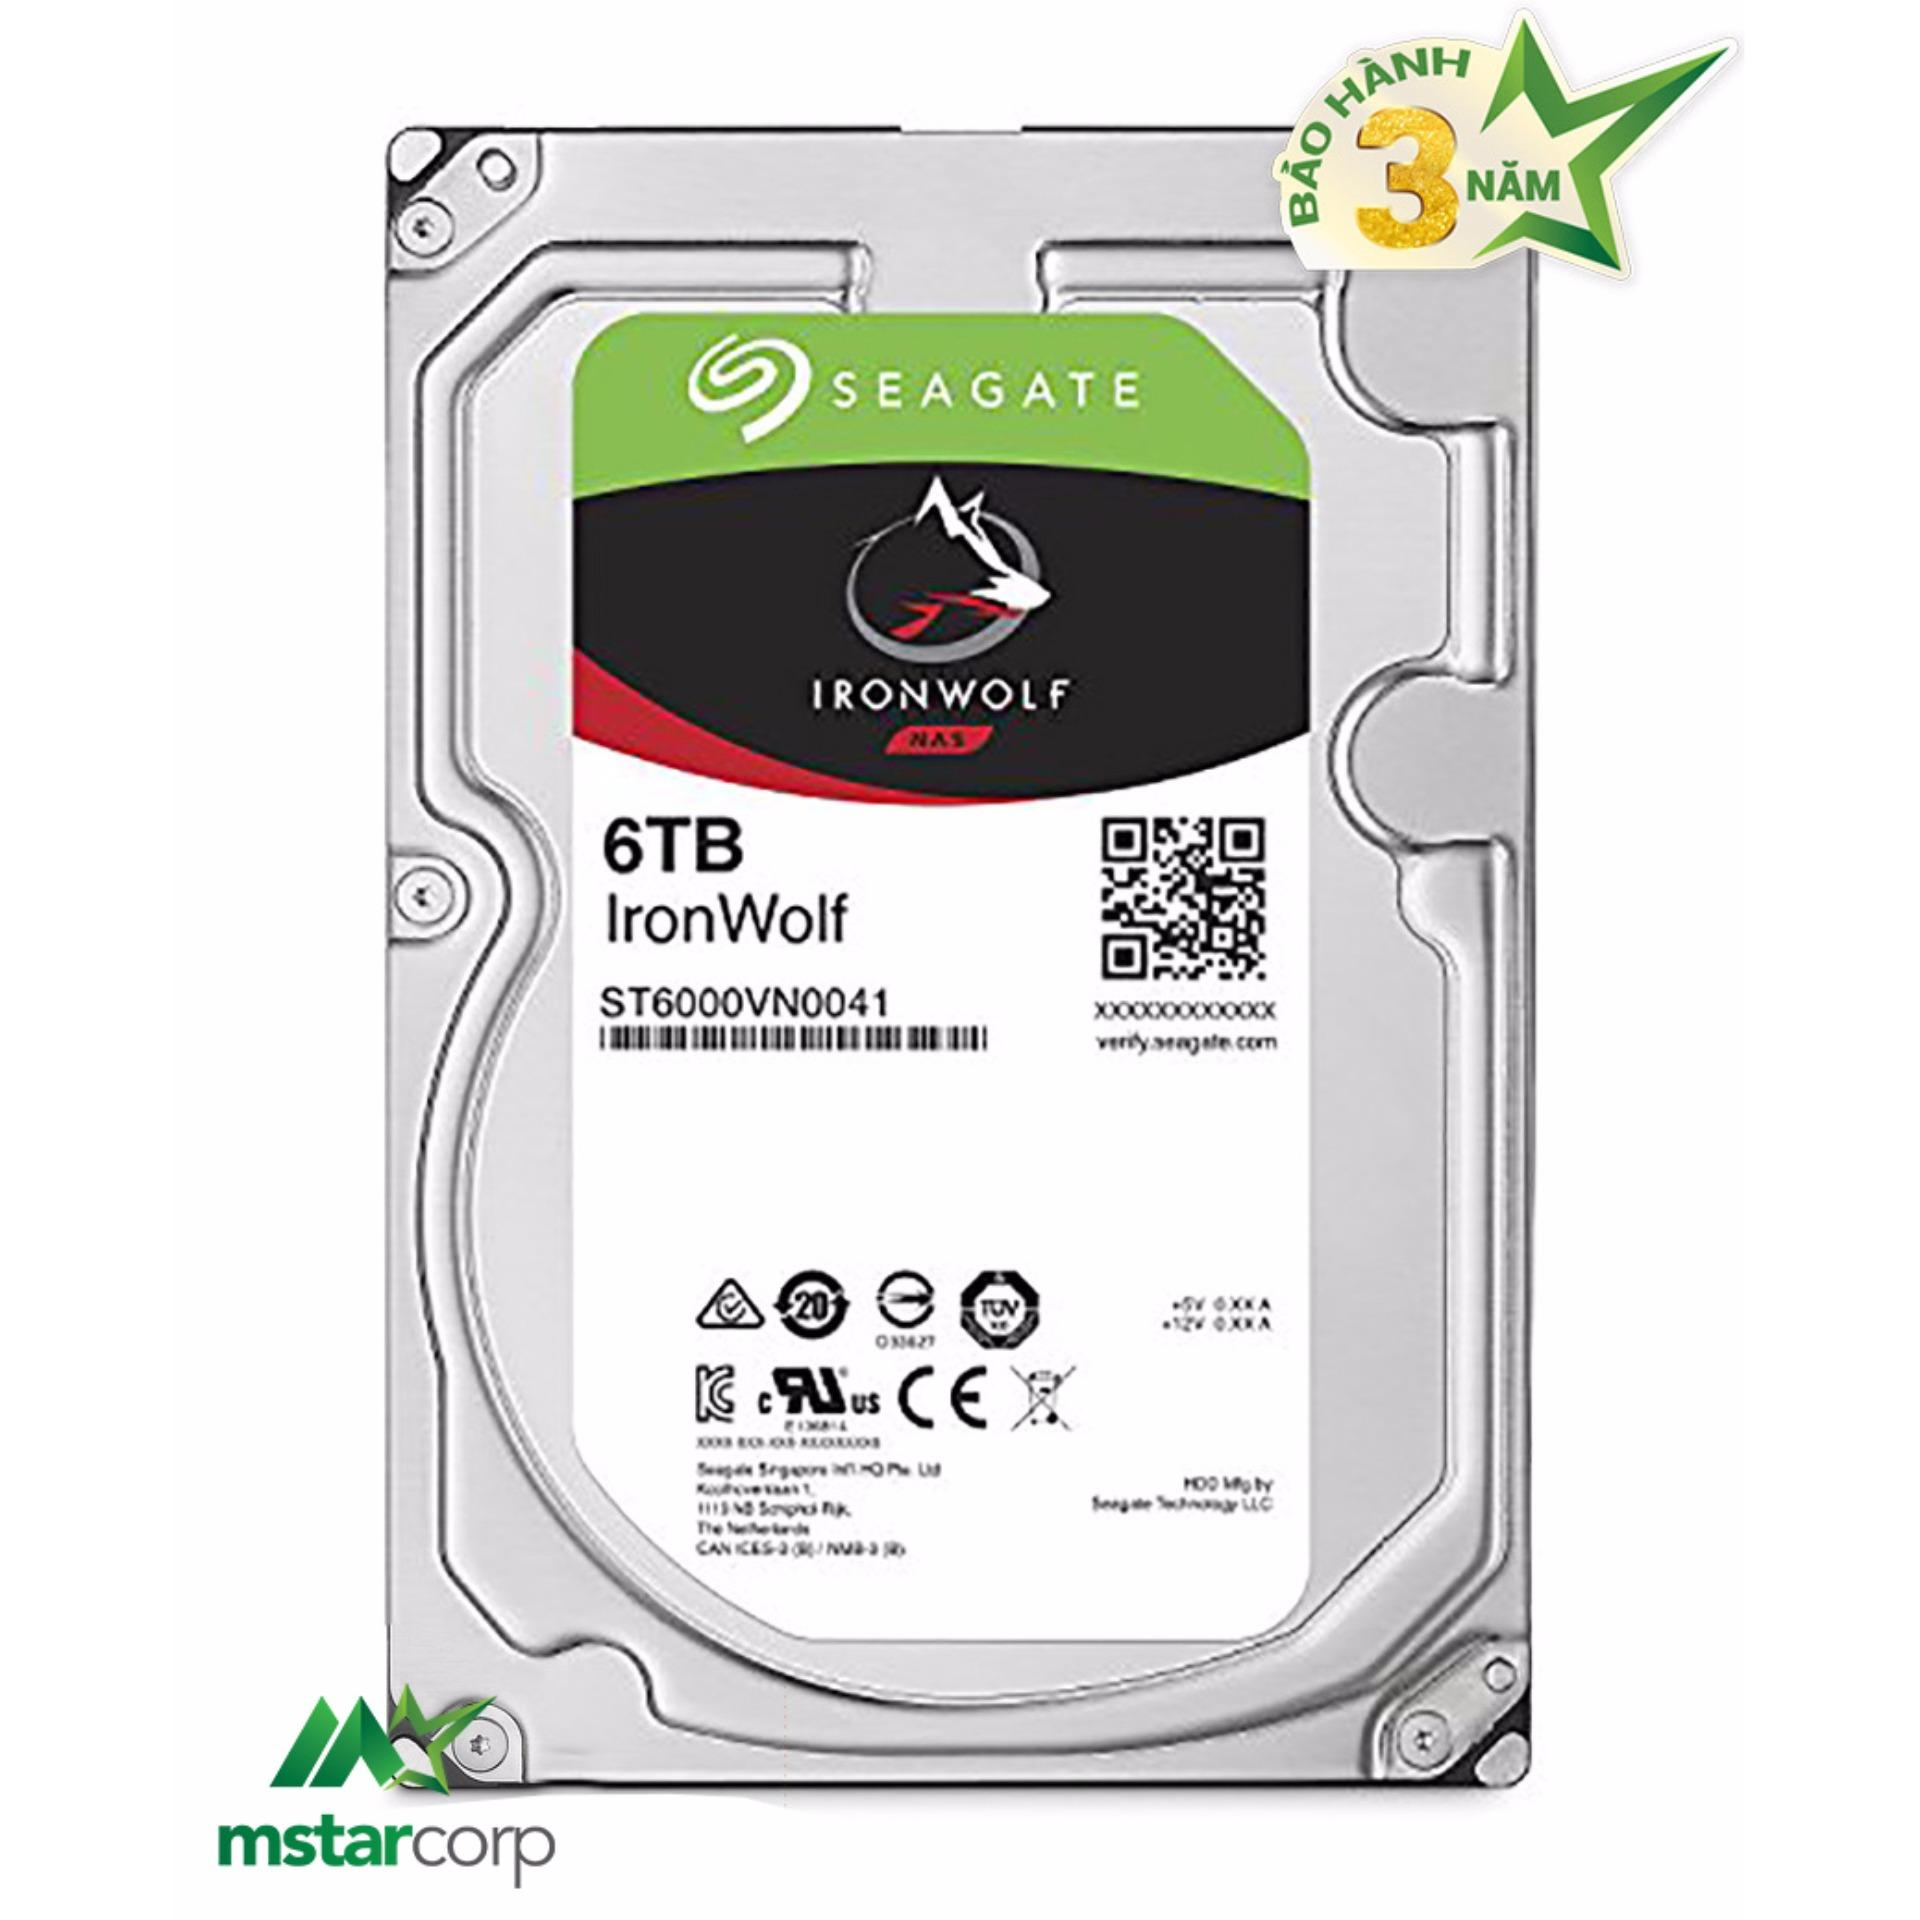 Ổ Cứng HDD NAS Seagate IronWolf 6TB - ST6000VN0041